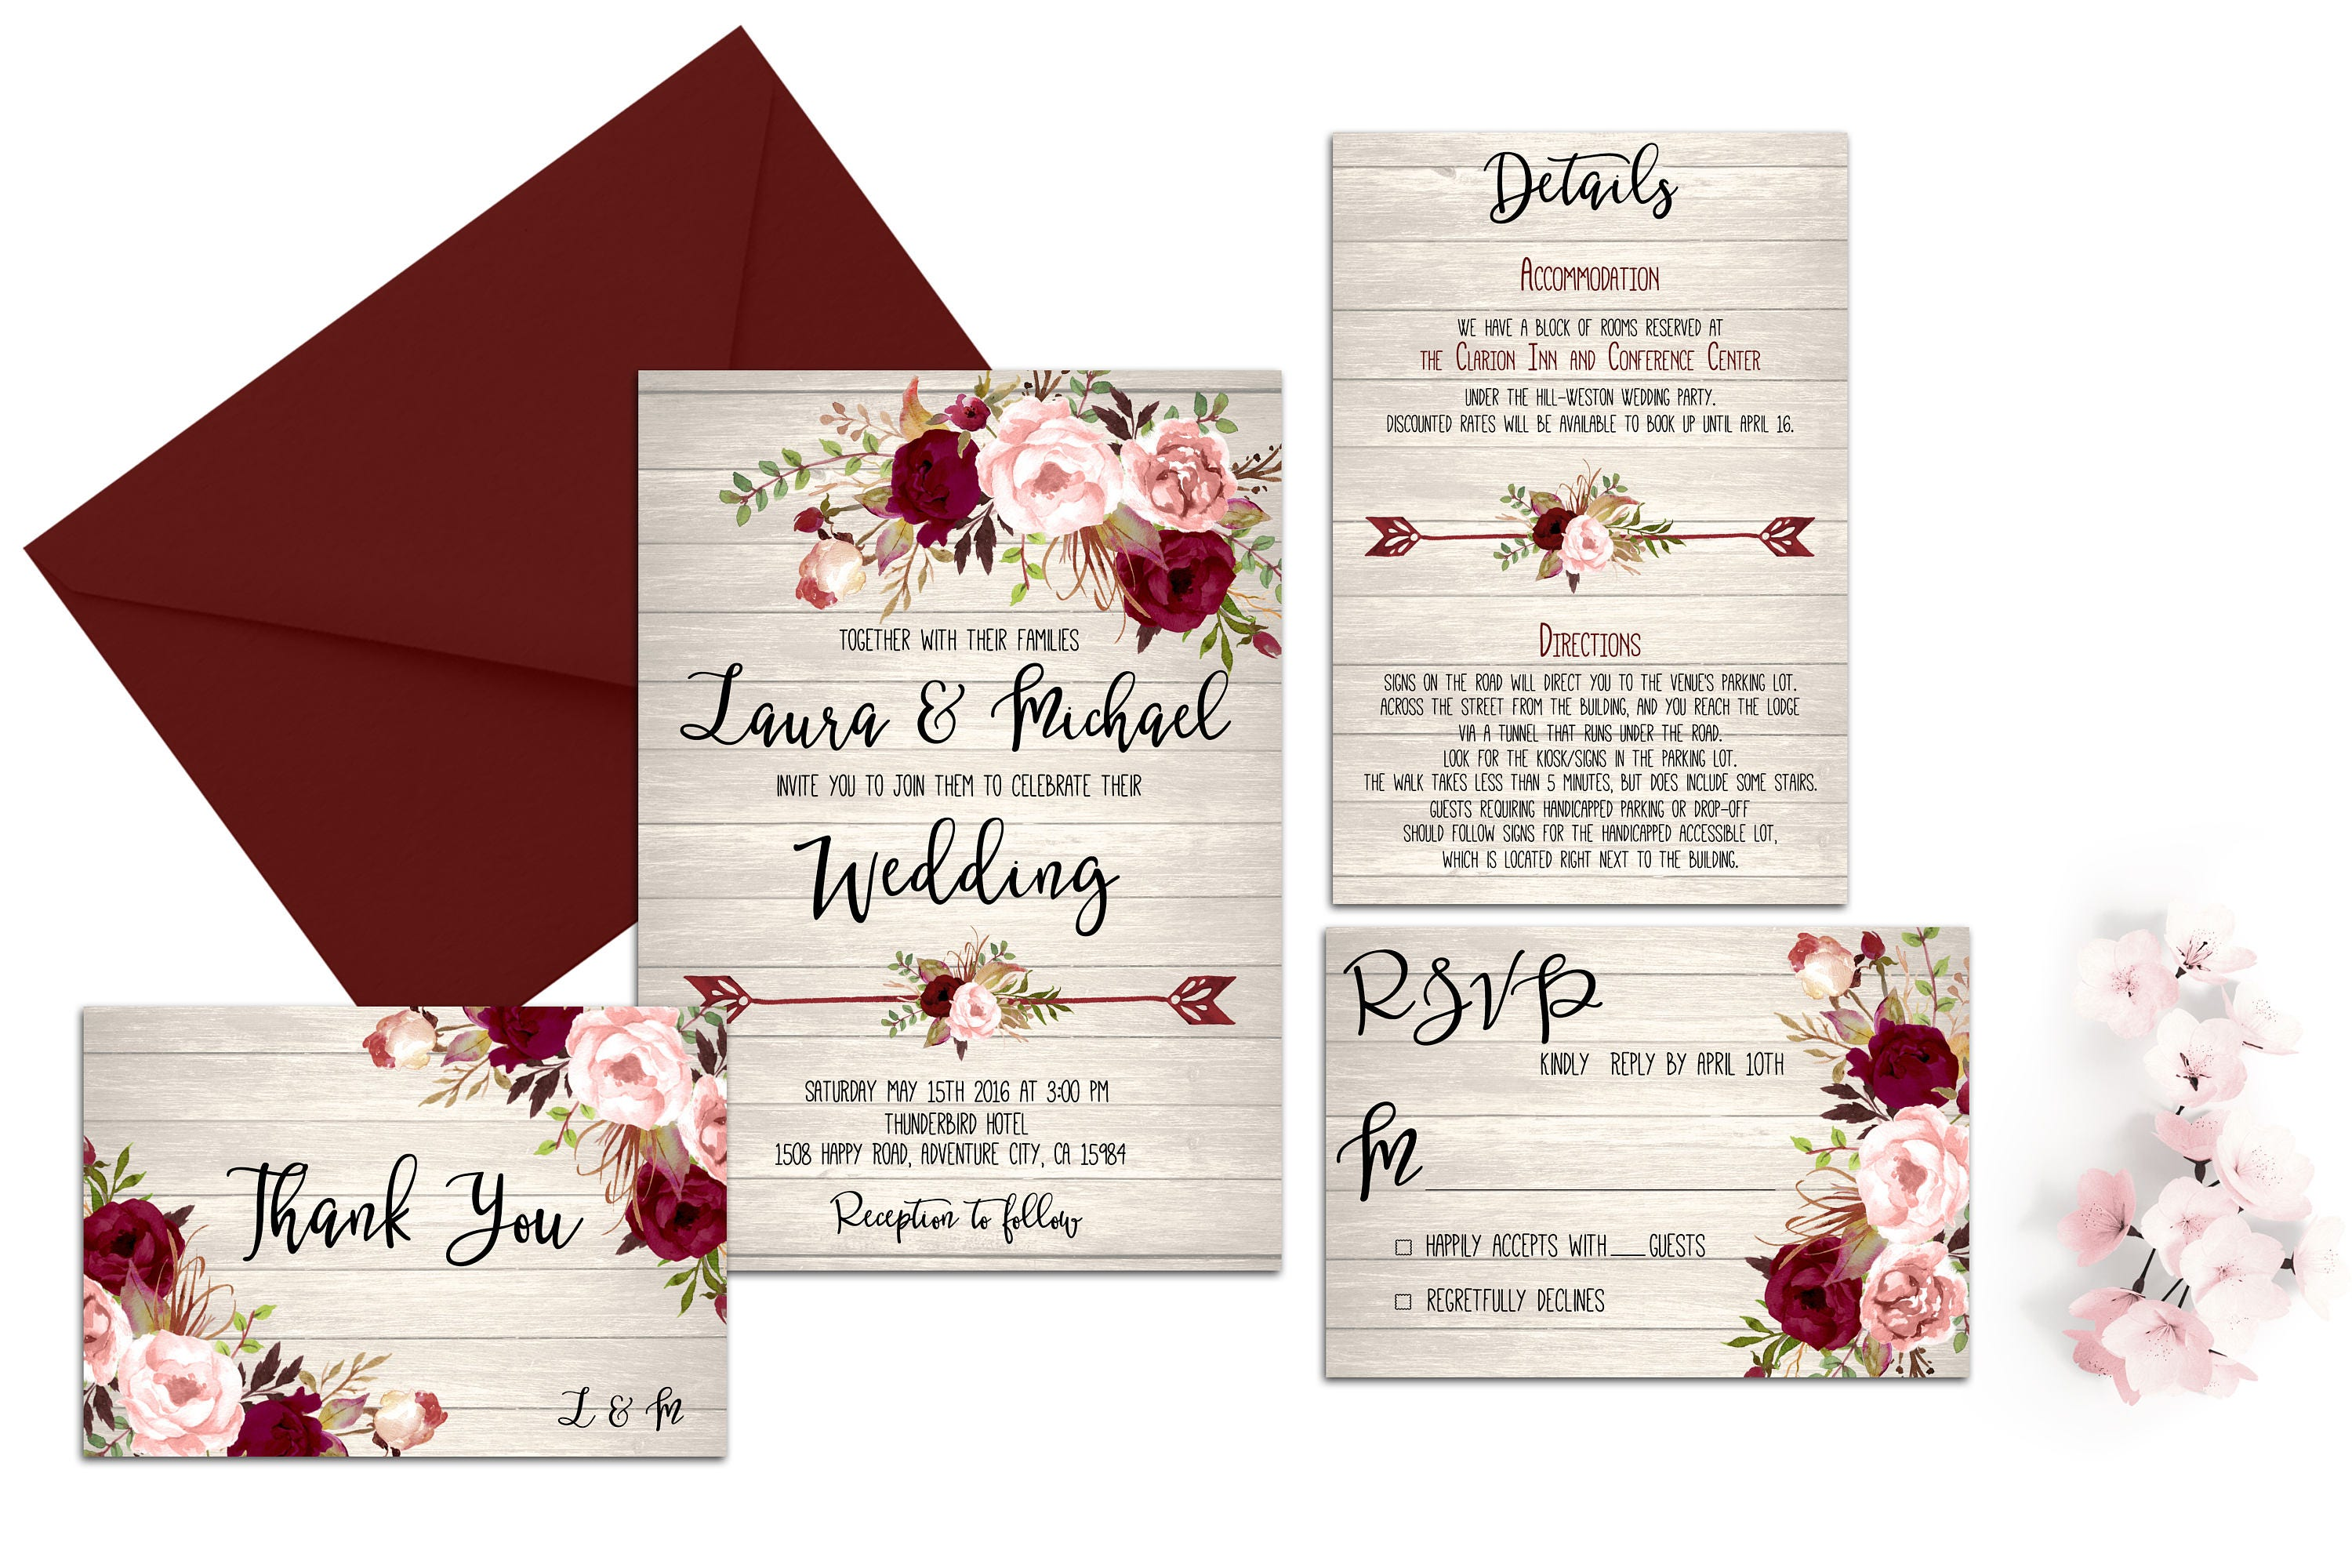 Fancy Wedding Invitations Country Chic Adornment - Invitations and ...